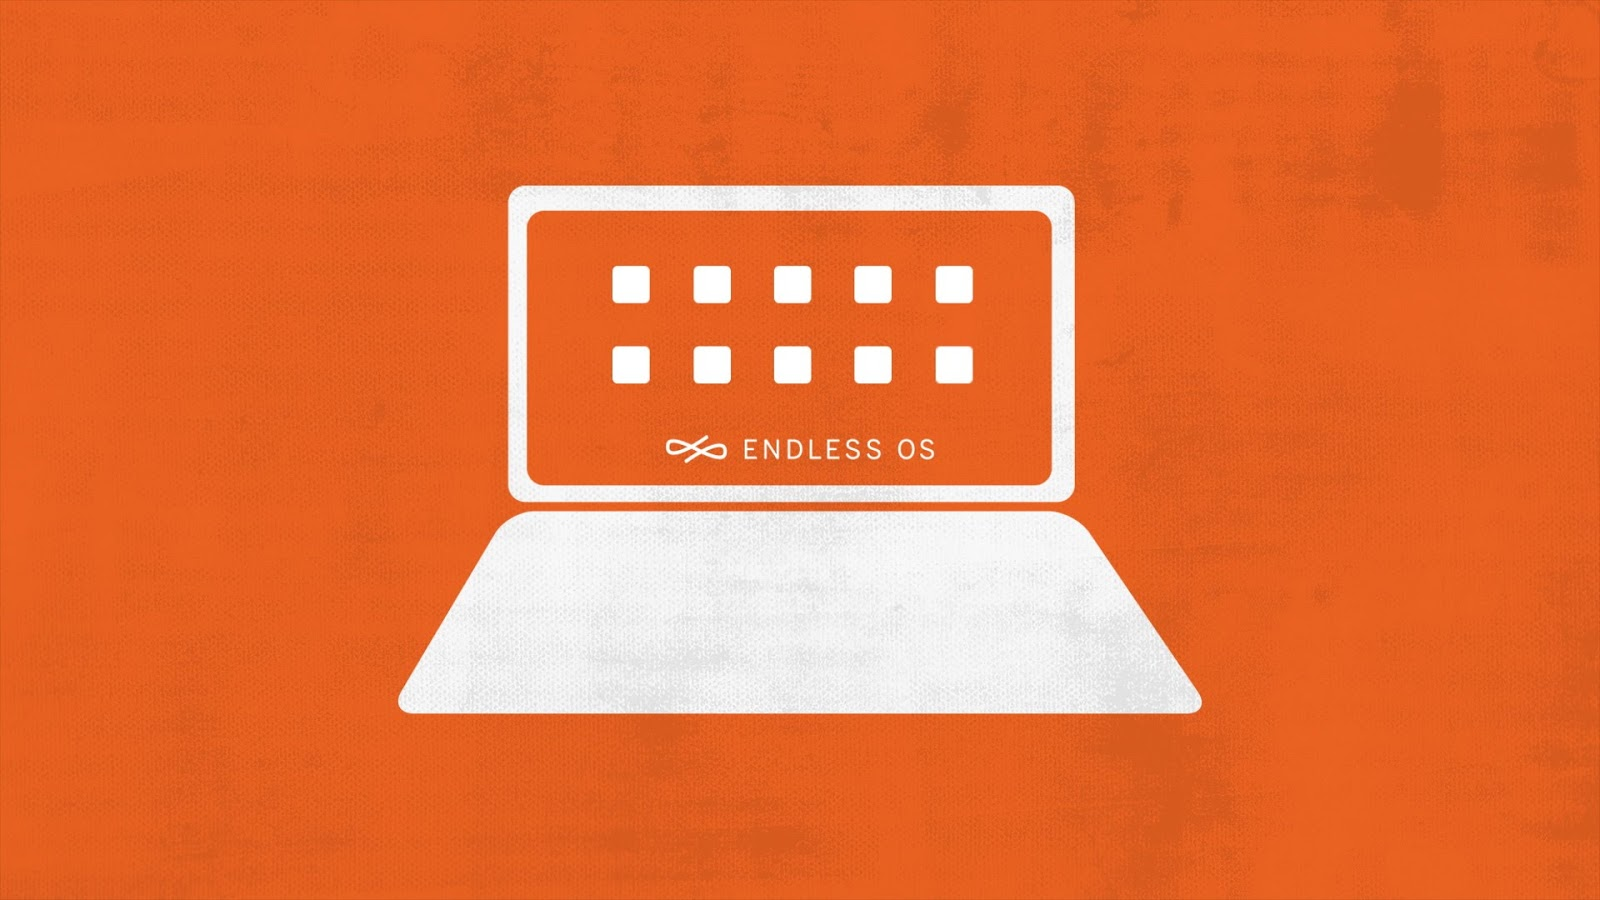 Download Free EndlessOS ISO Basic English Indonesia